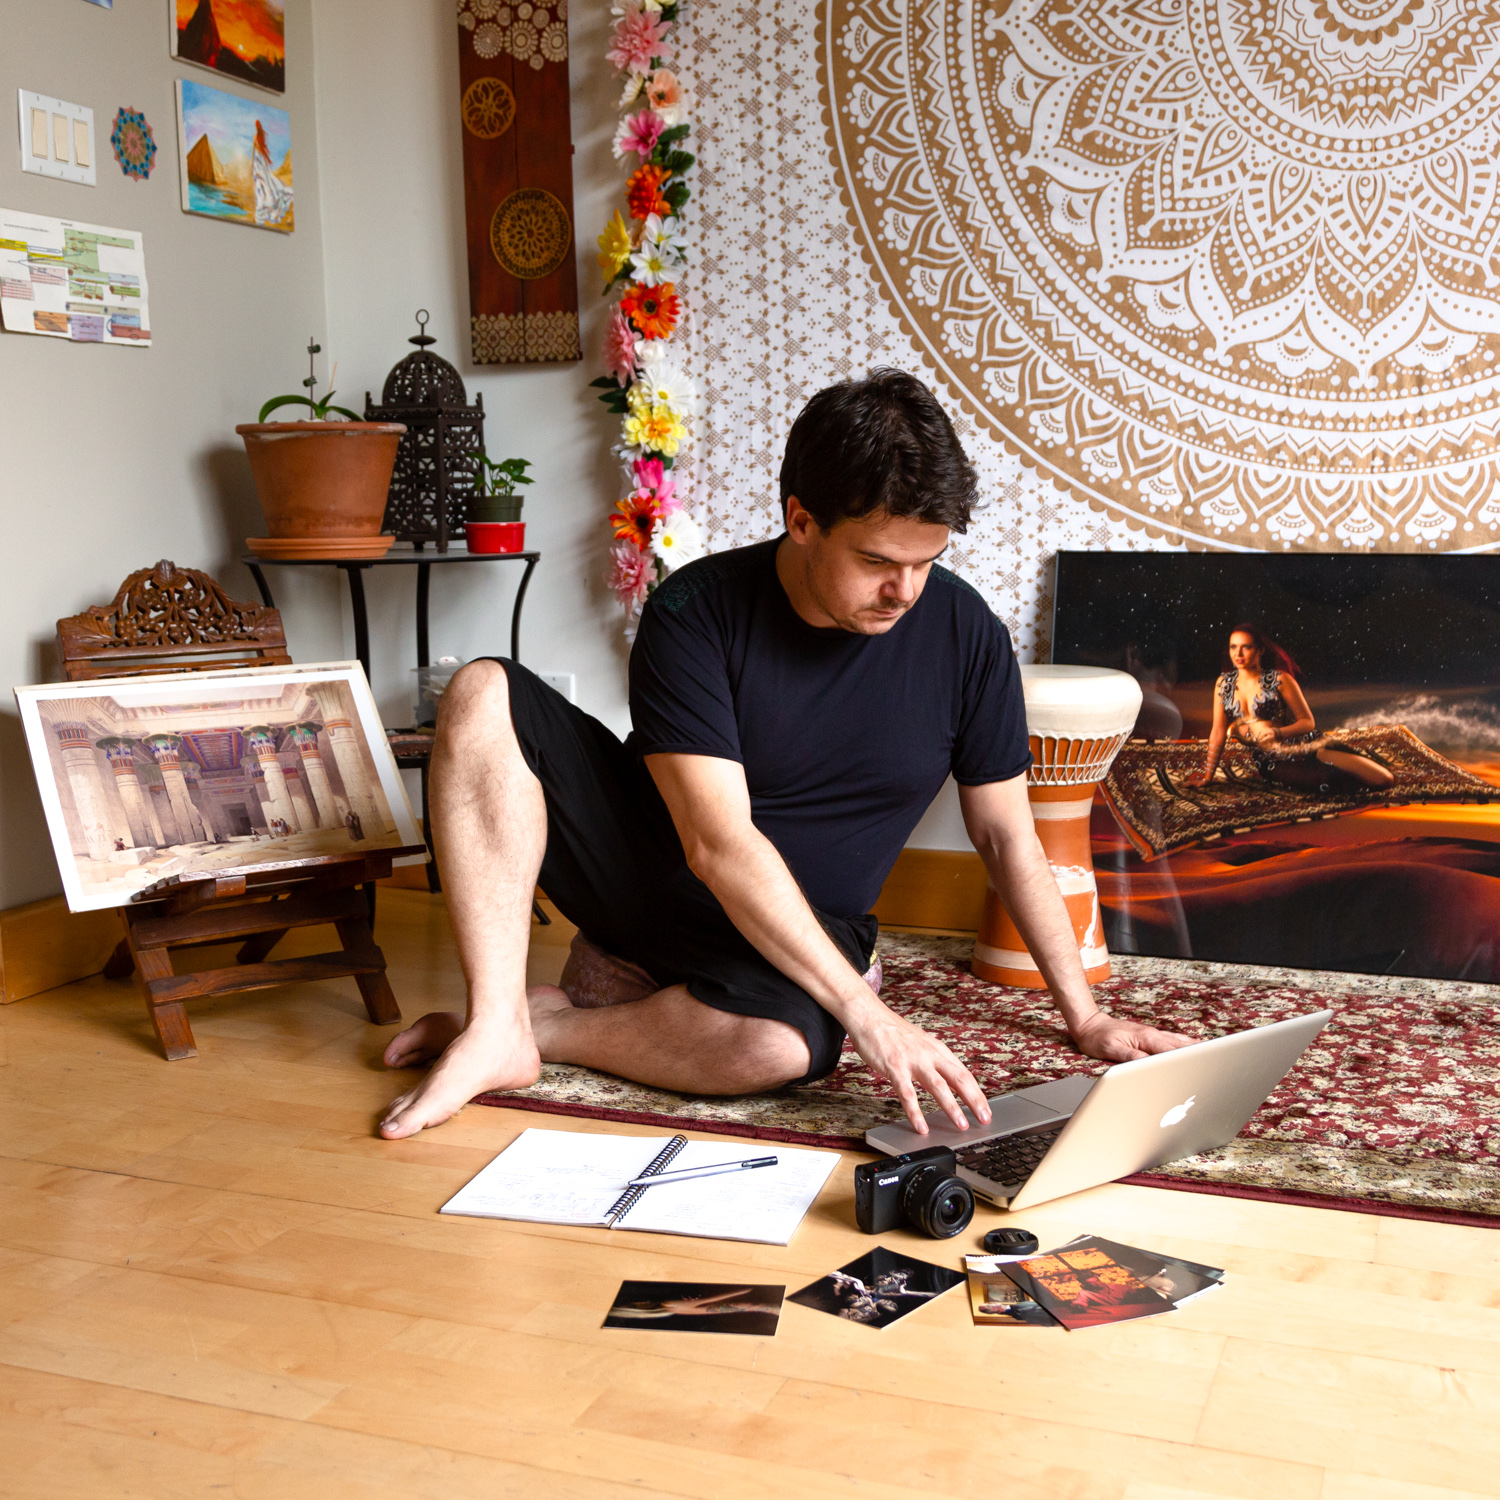 Pedro Bonatto at his home studio in Toronto. Photo by Iana Komarnytska.